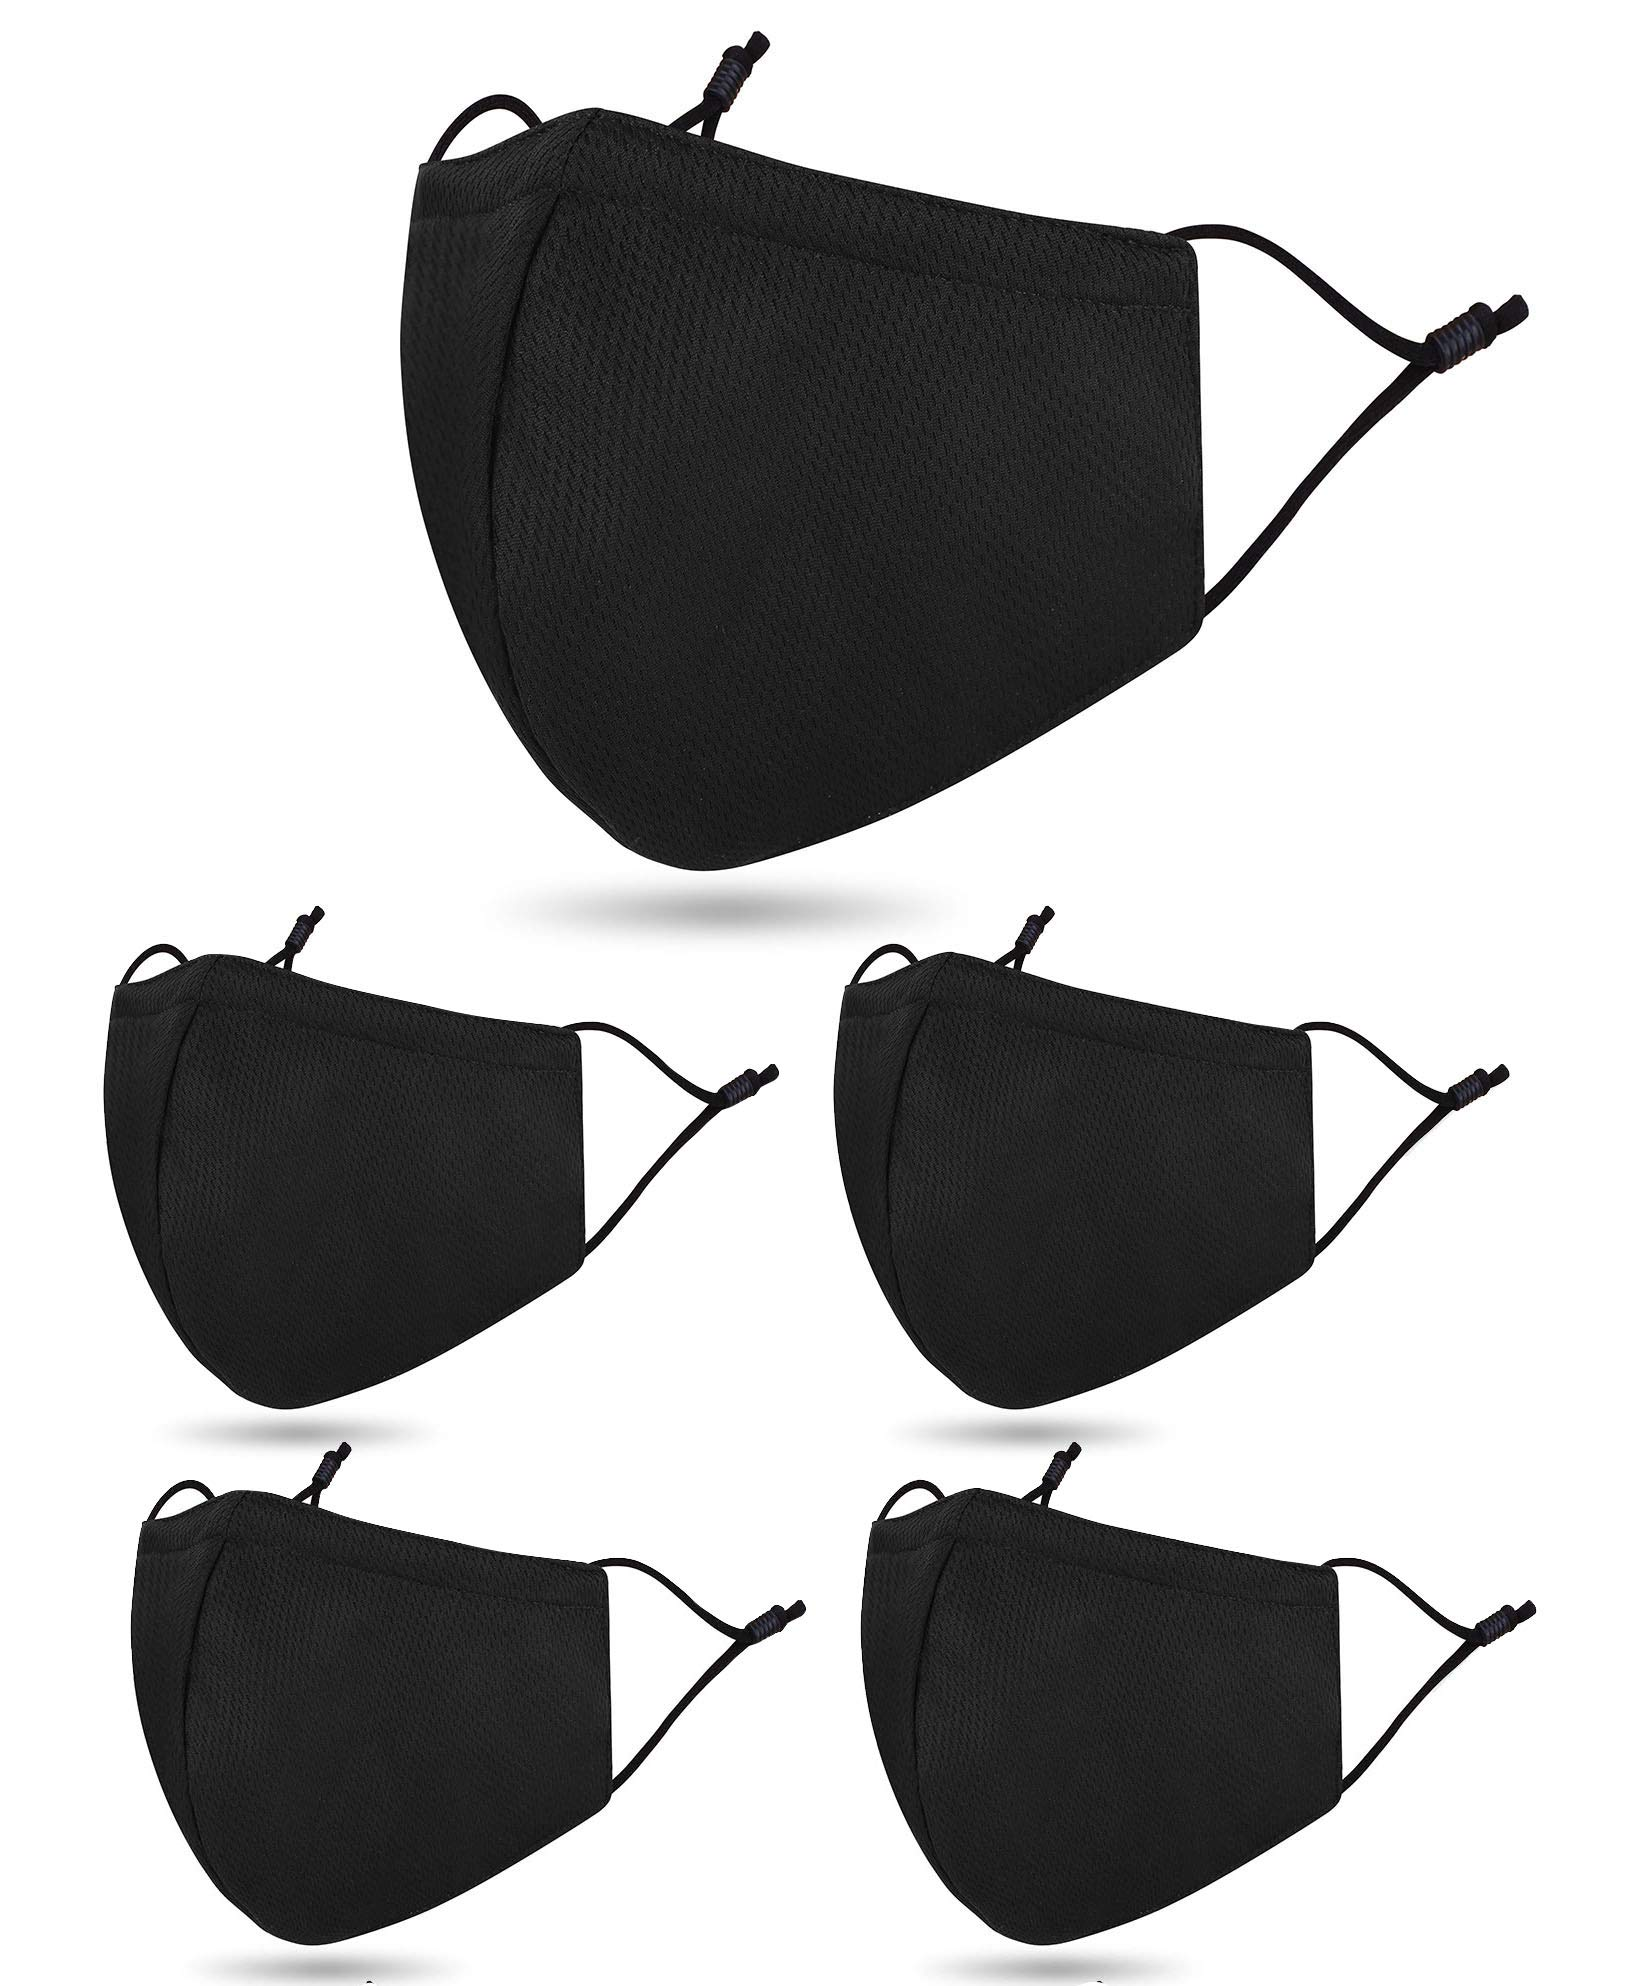 5 PCS Washable Reusable 2 Layers Breathable Face Madks Facial M_ask C-over, B